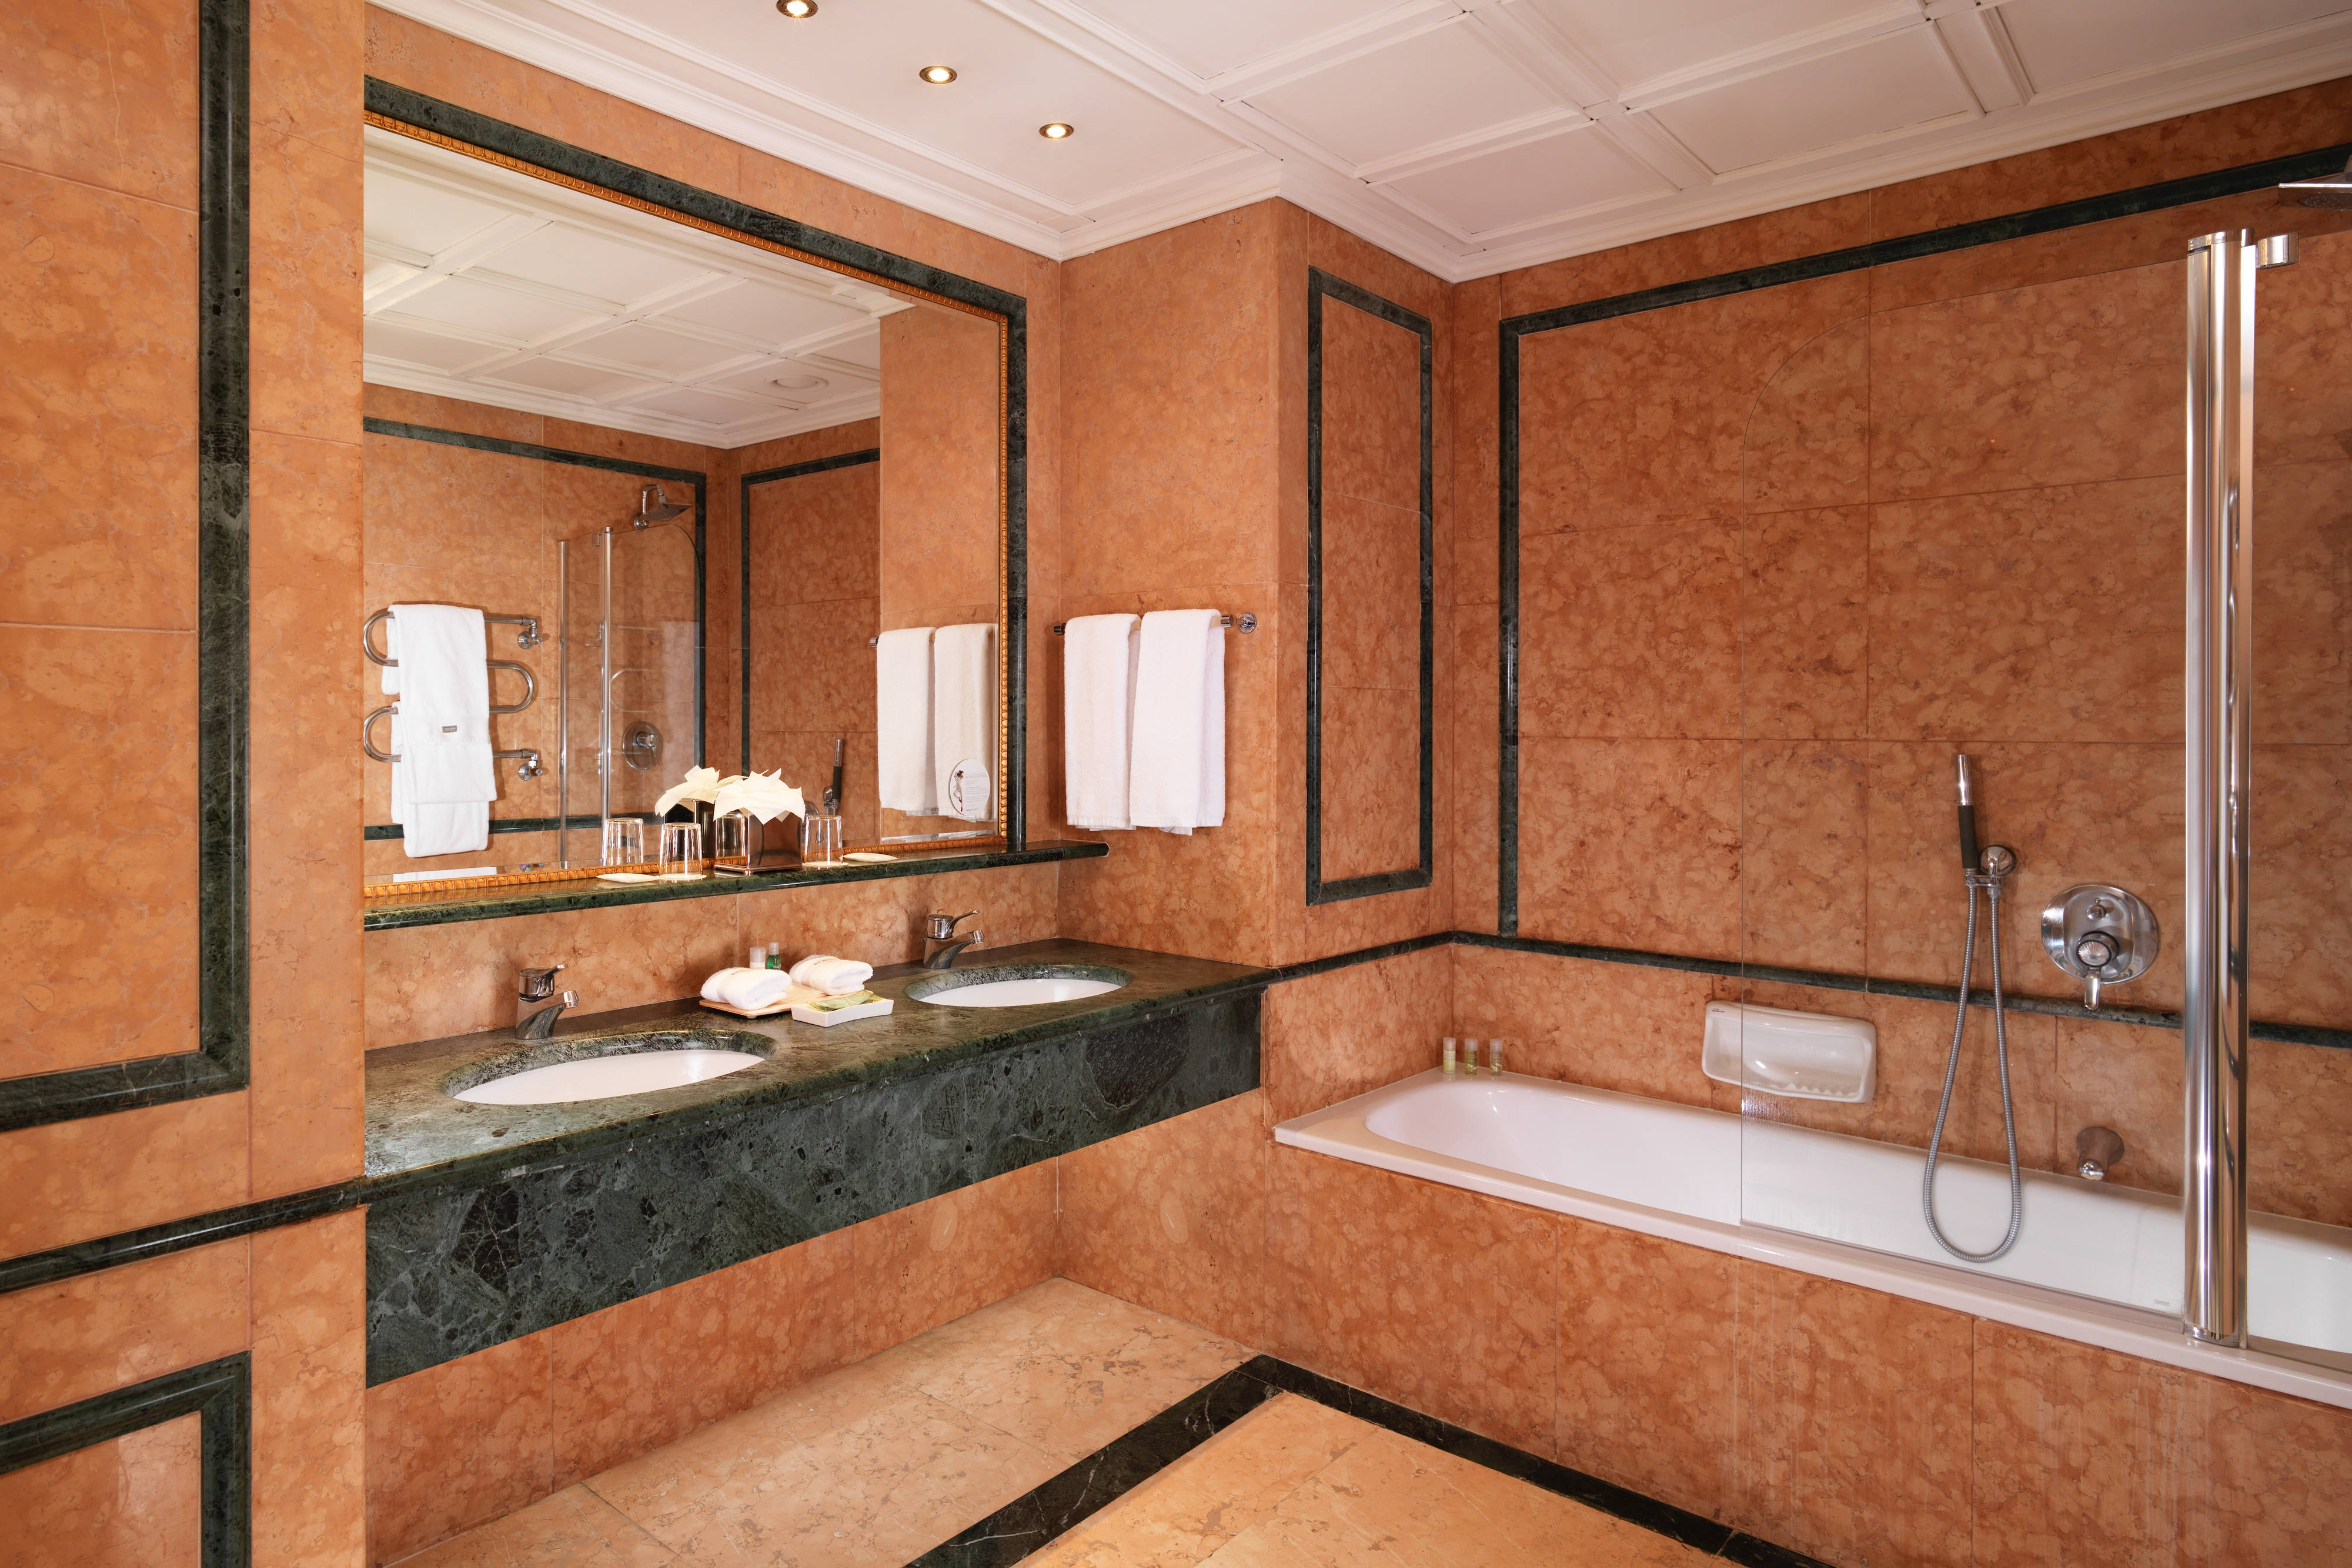 Deluxe Imperial Room - Bathroom